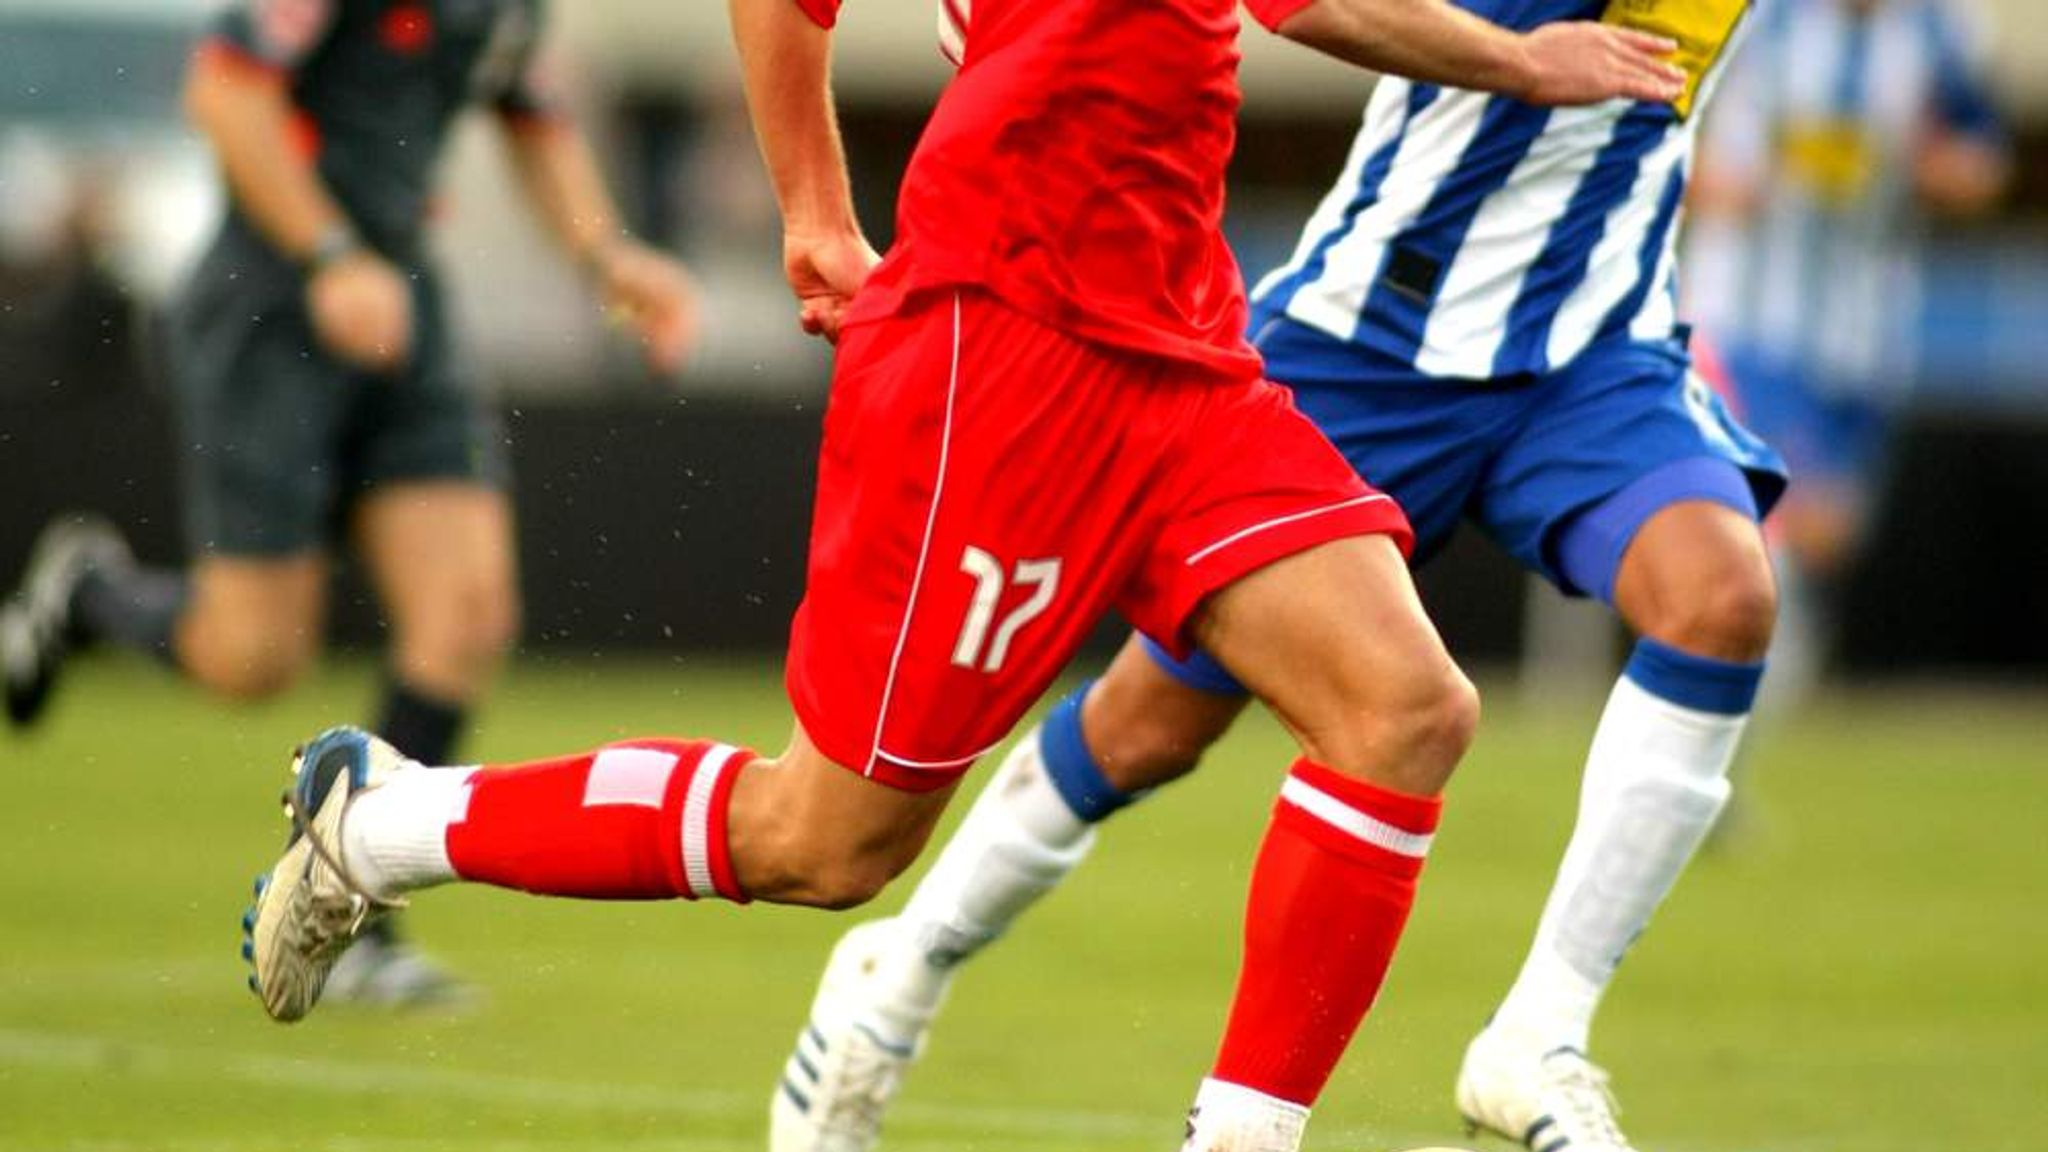 football match descriptive We know many kinds of games the game of football is one of them it was first played in the western countries now, it is played all over the world related articles: how to write an essay on football match.